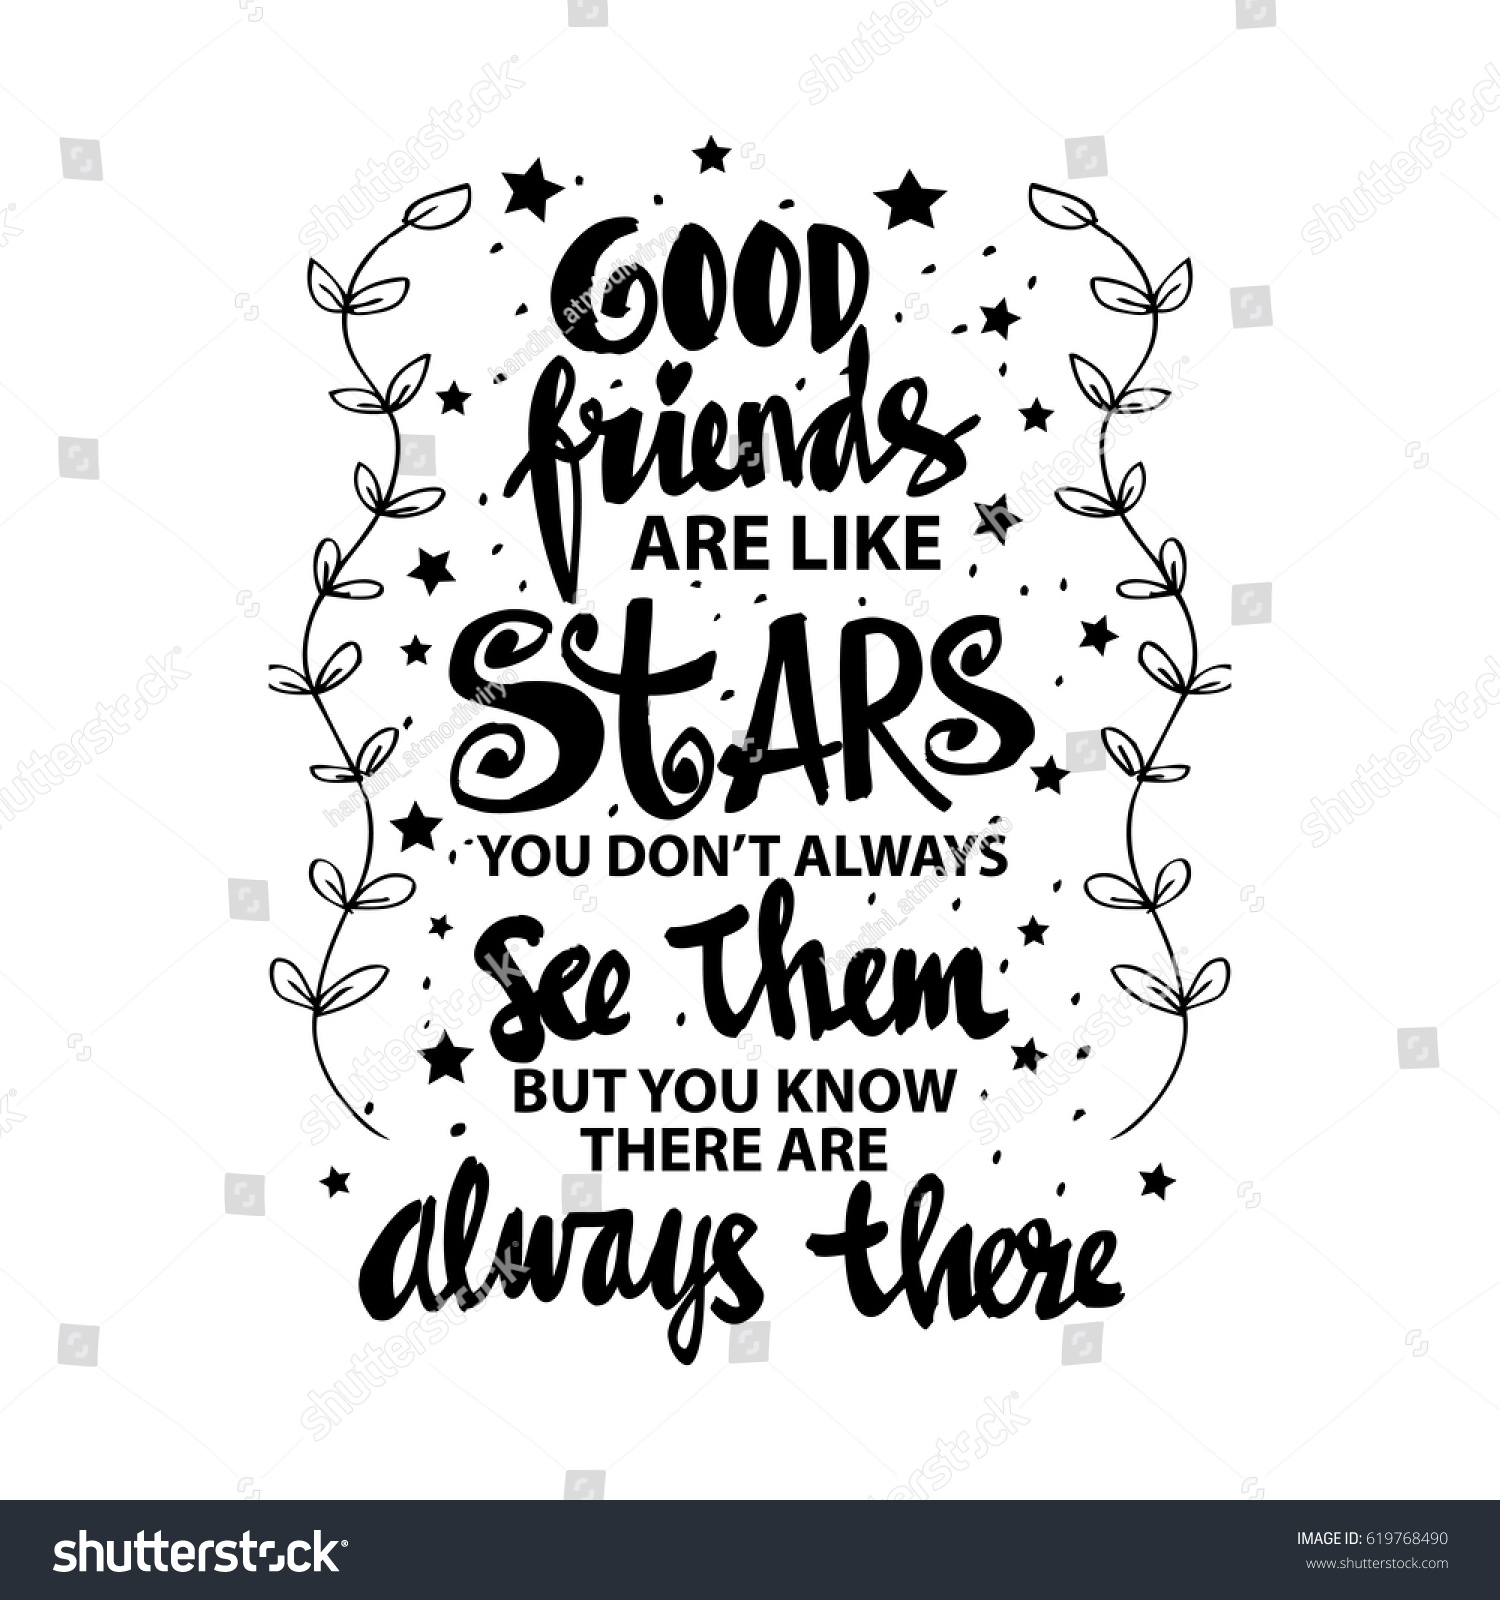 Good Friends Like Stars You Do Stockvector Rechtenvrij 619768490